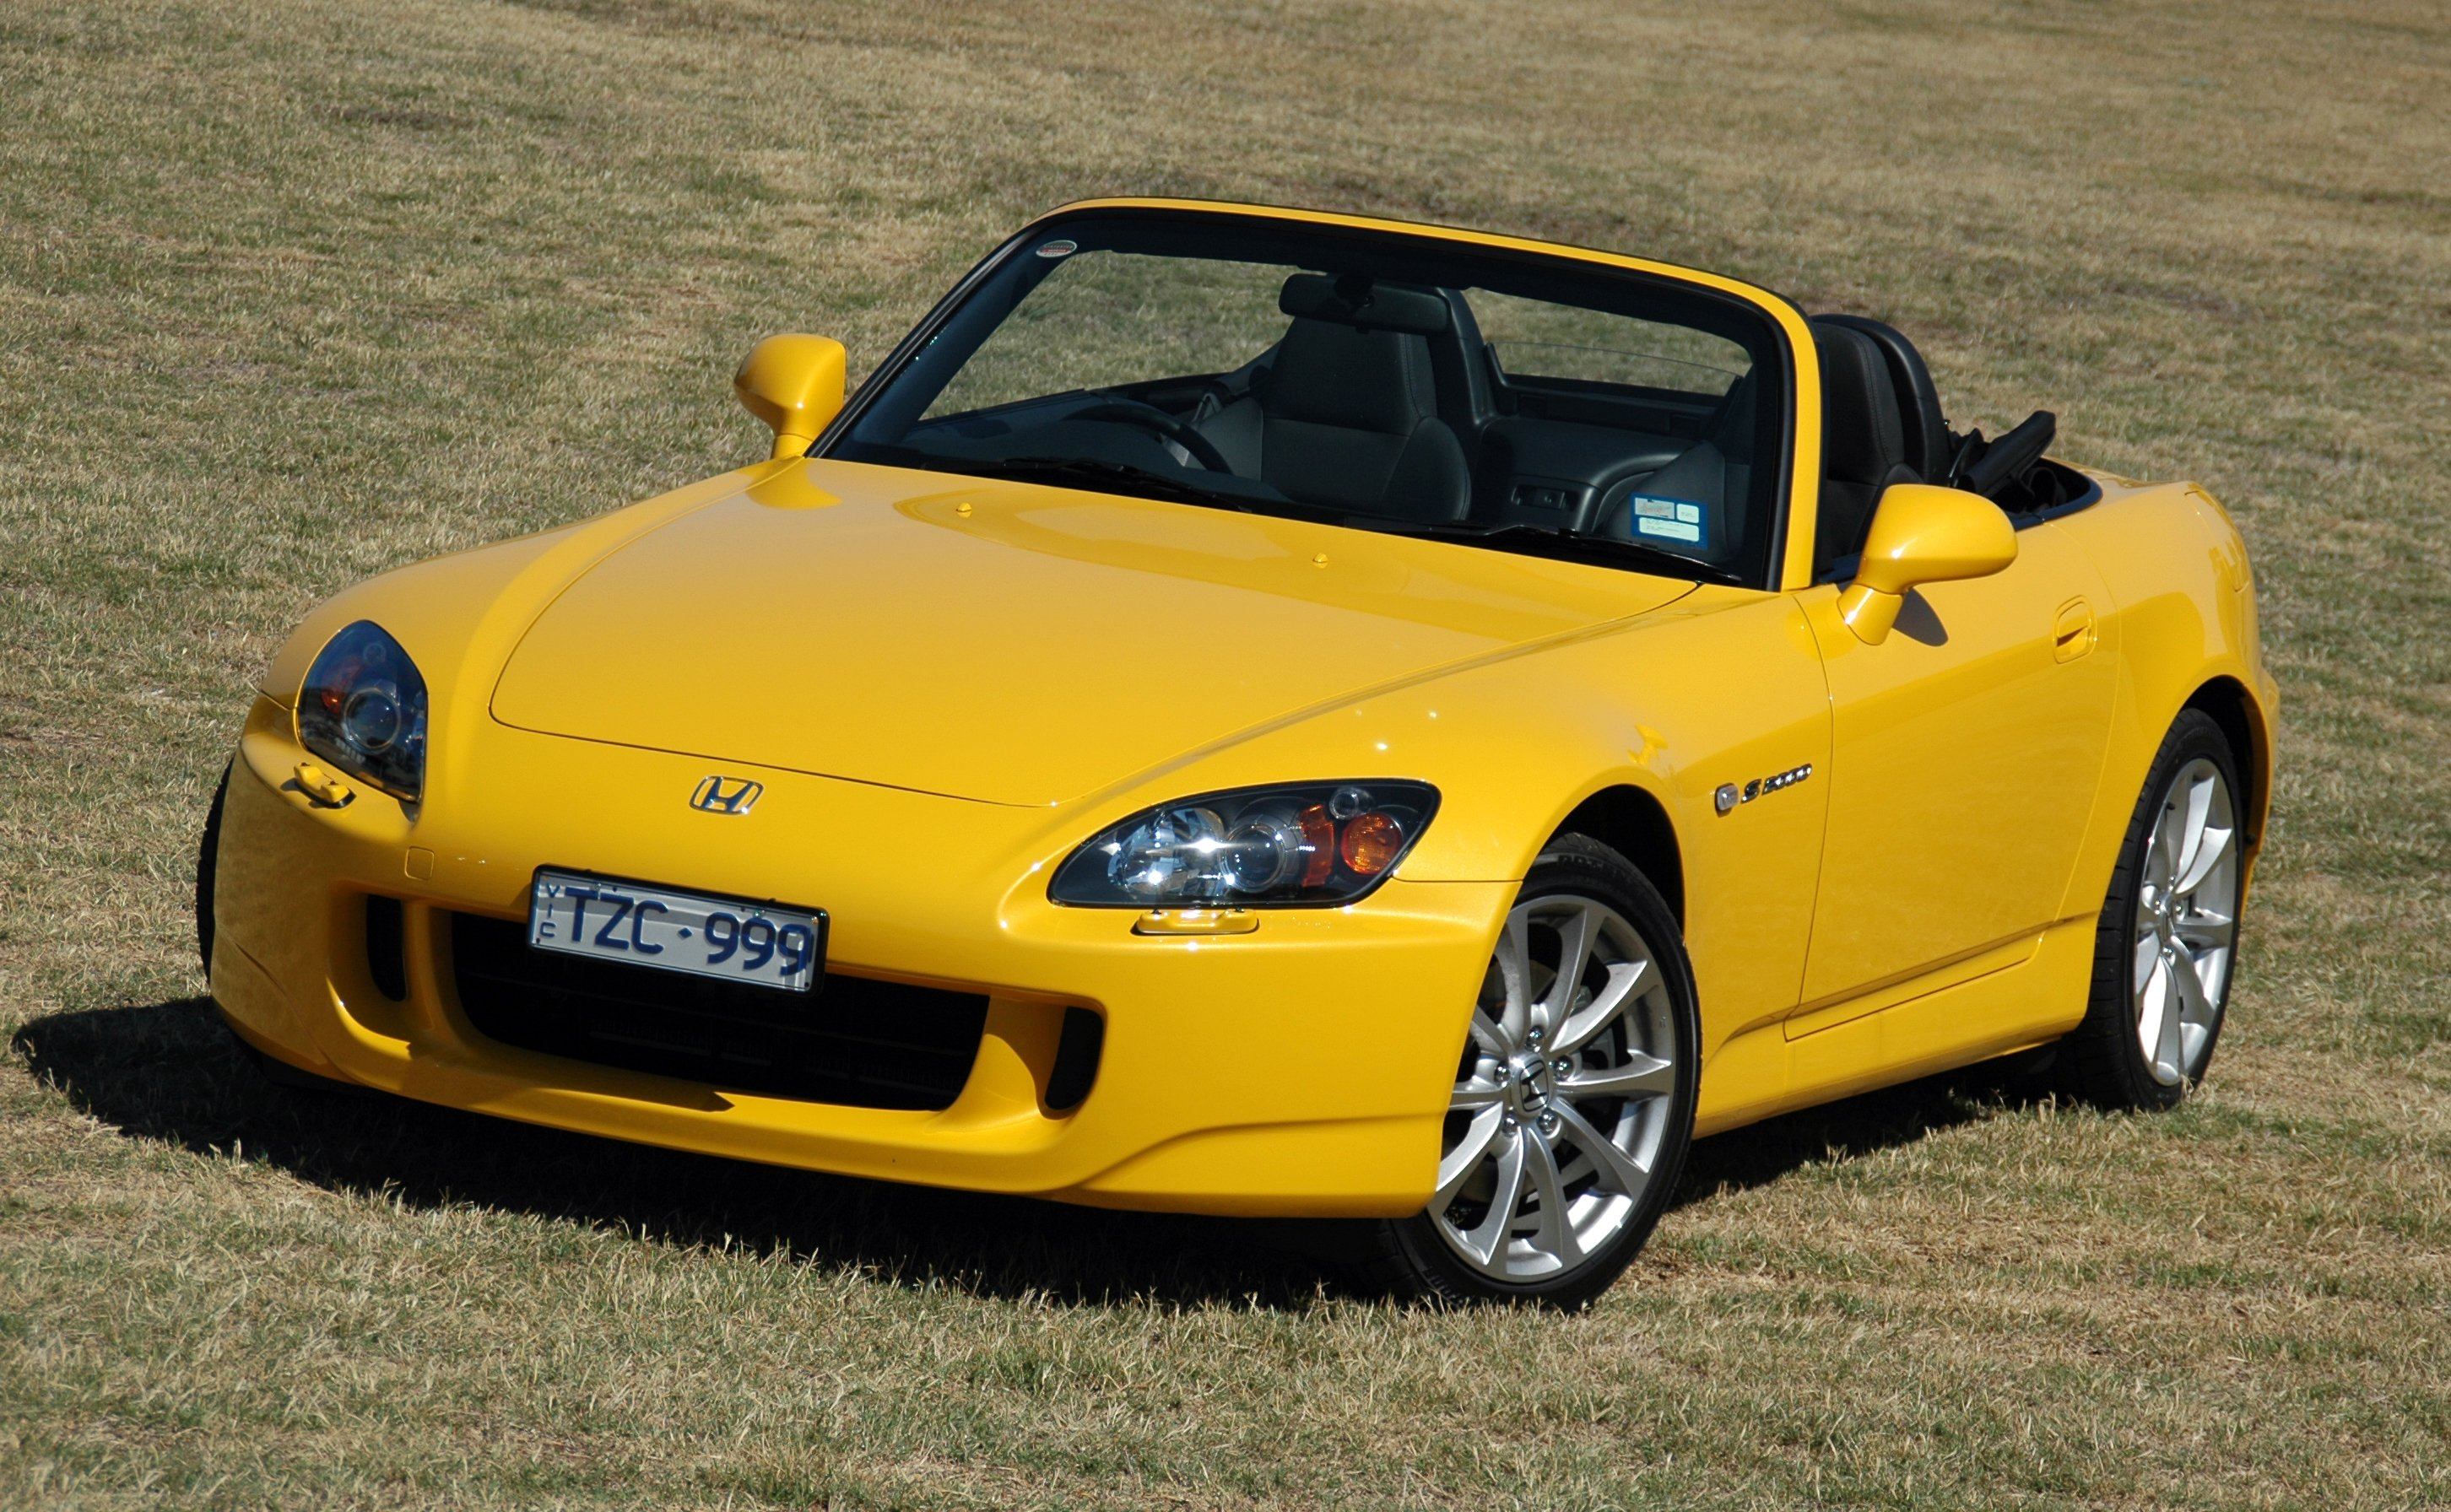 Yes, a 'new' Honda S2000 was sold in Australia last month ...